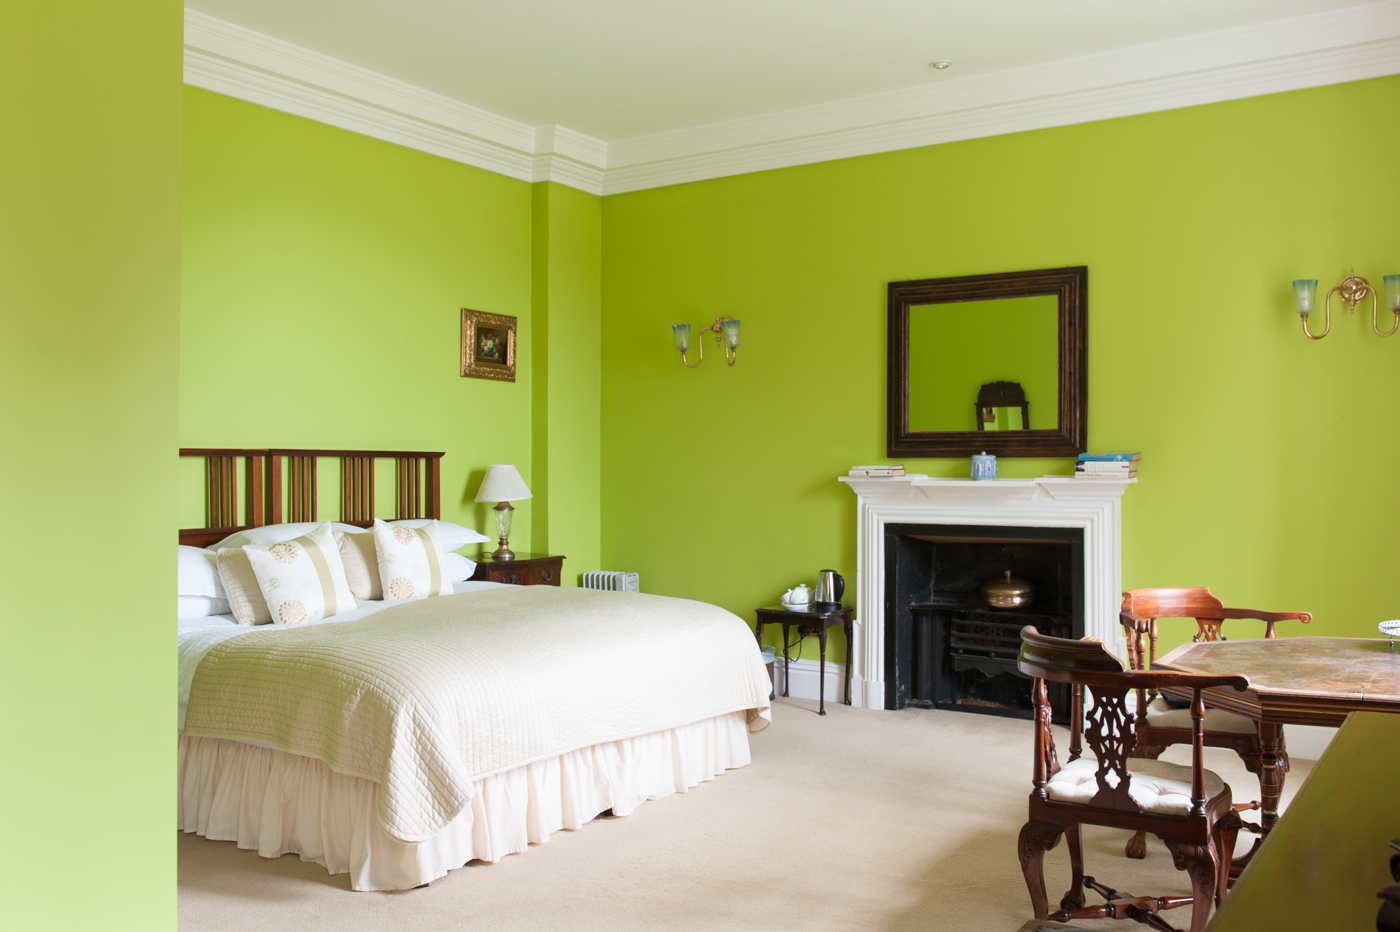 interior room photography, commercial photography website photography